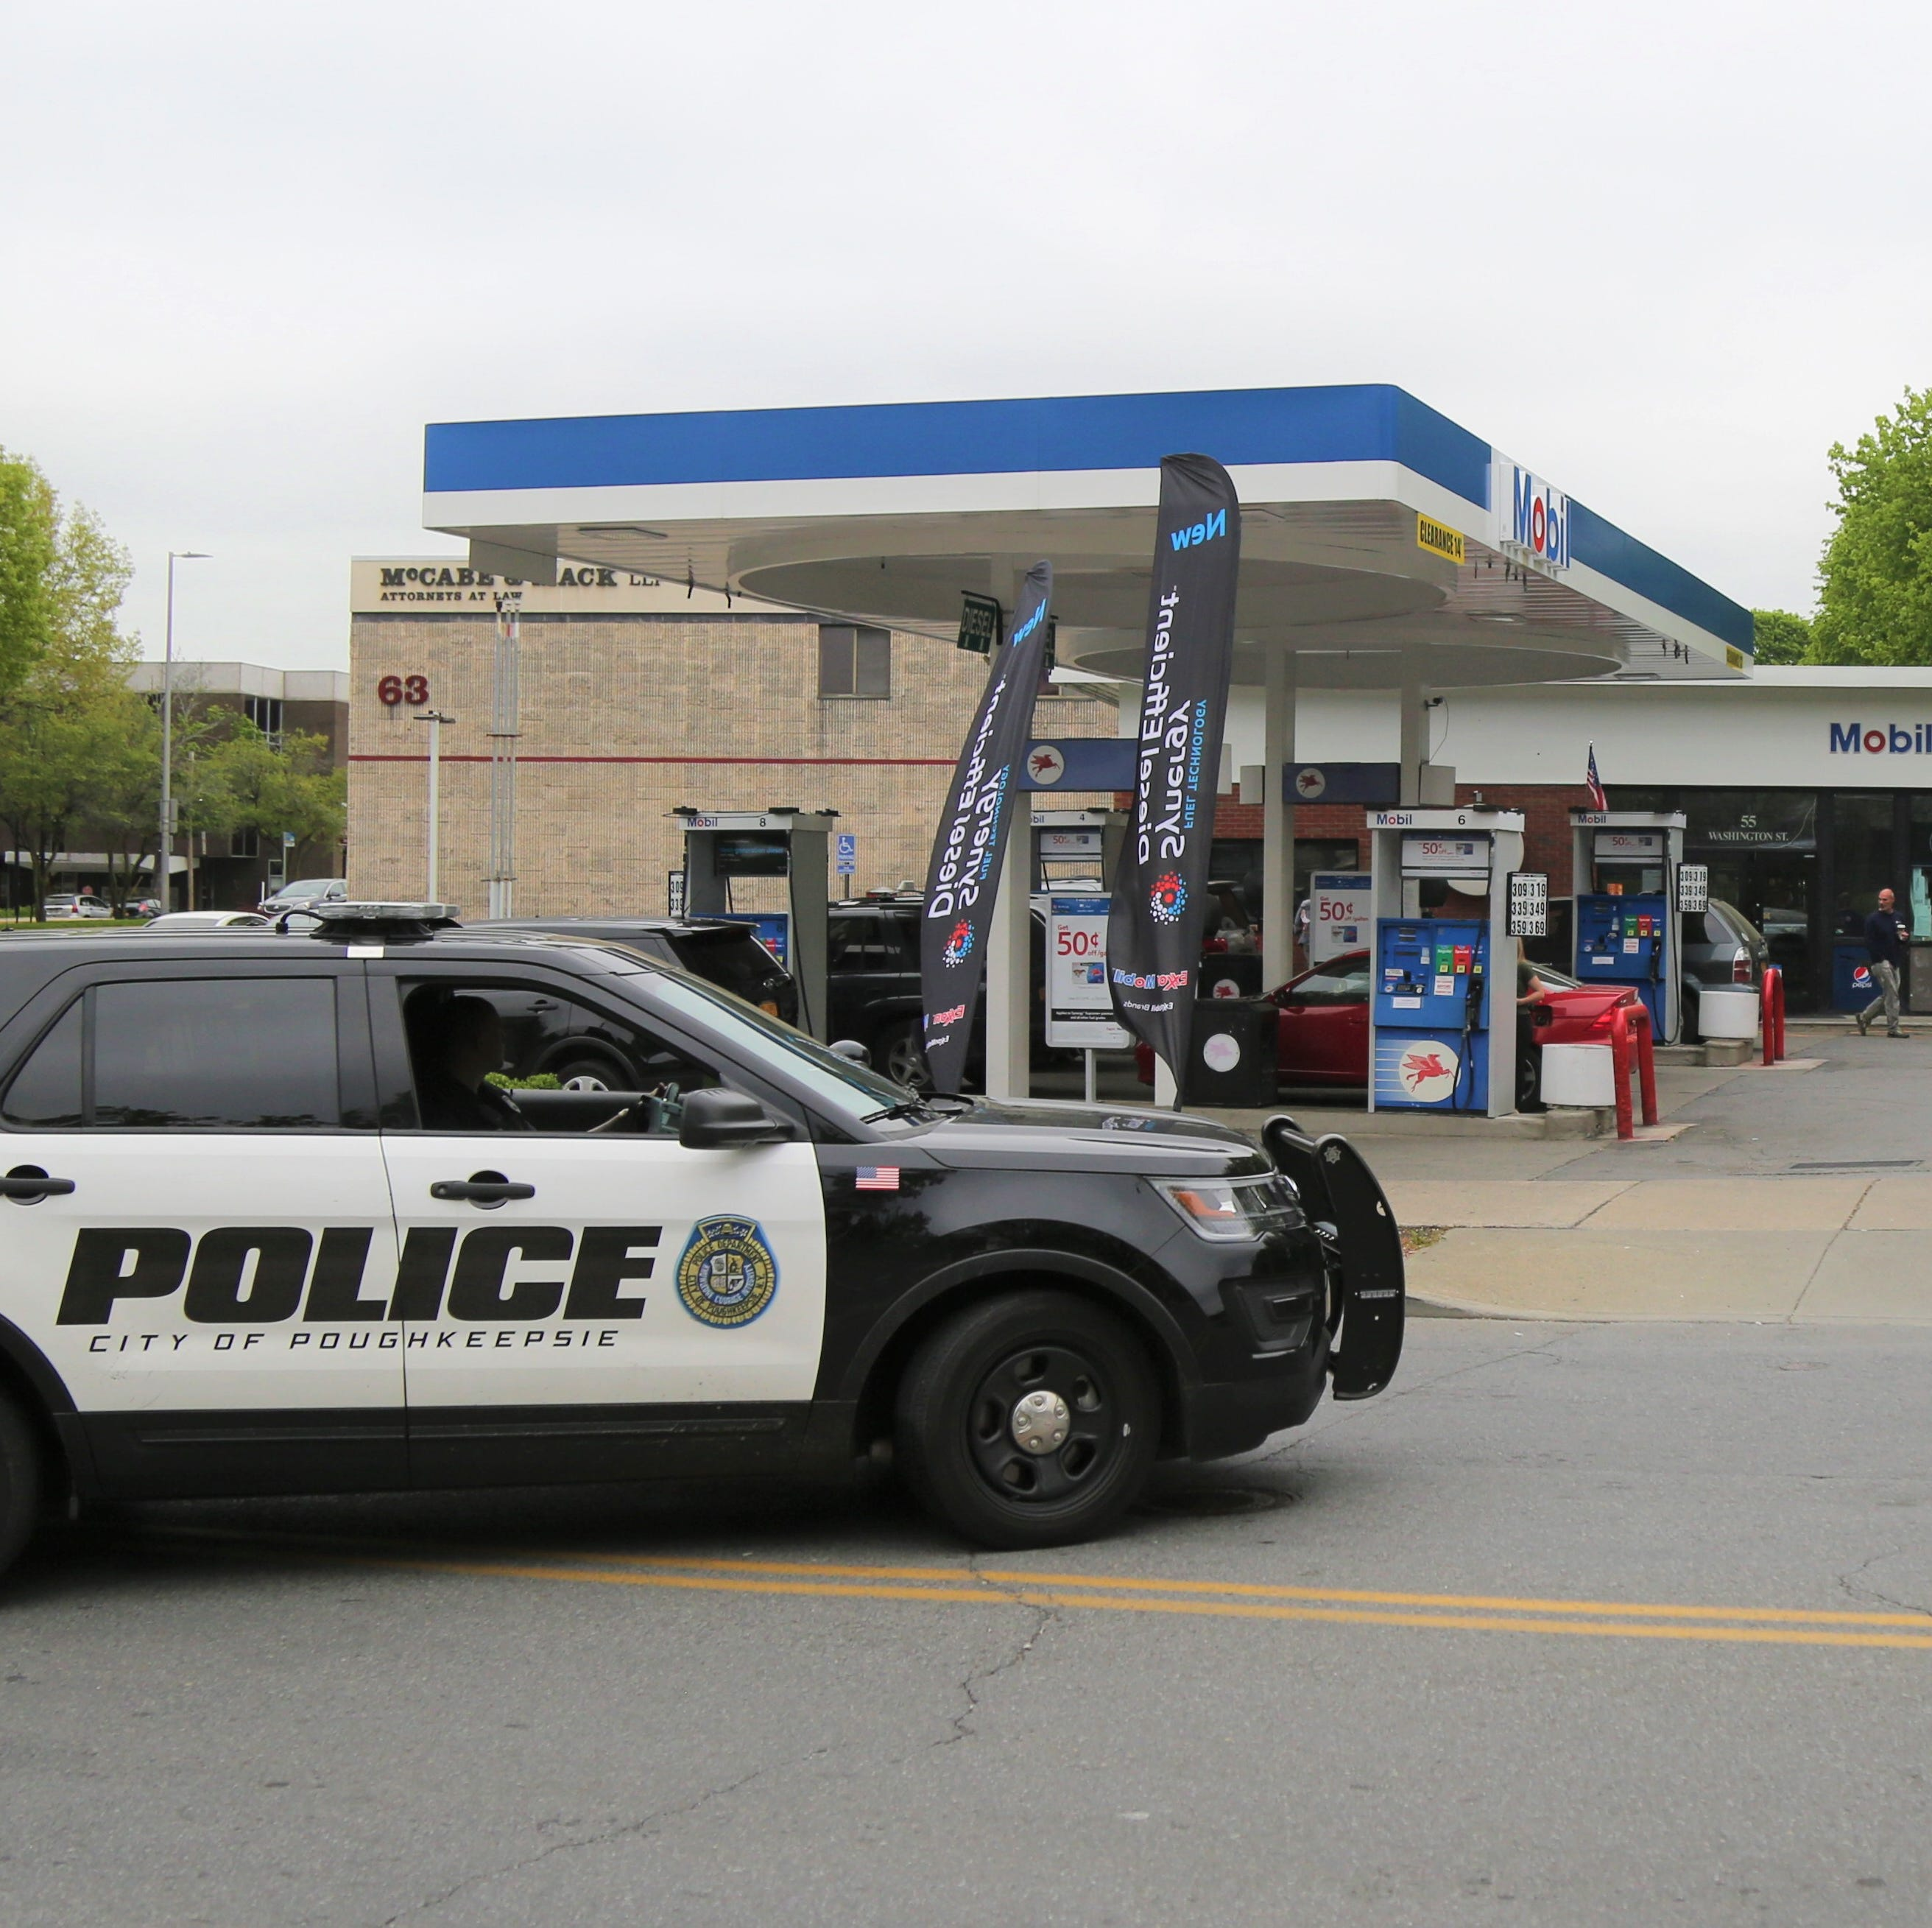 Teen faces assault felony following Mobil gas station stabbing: police